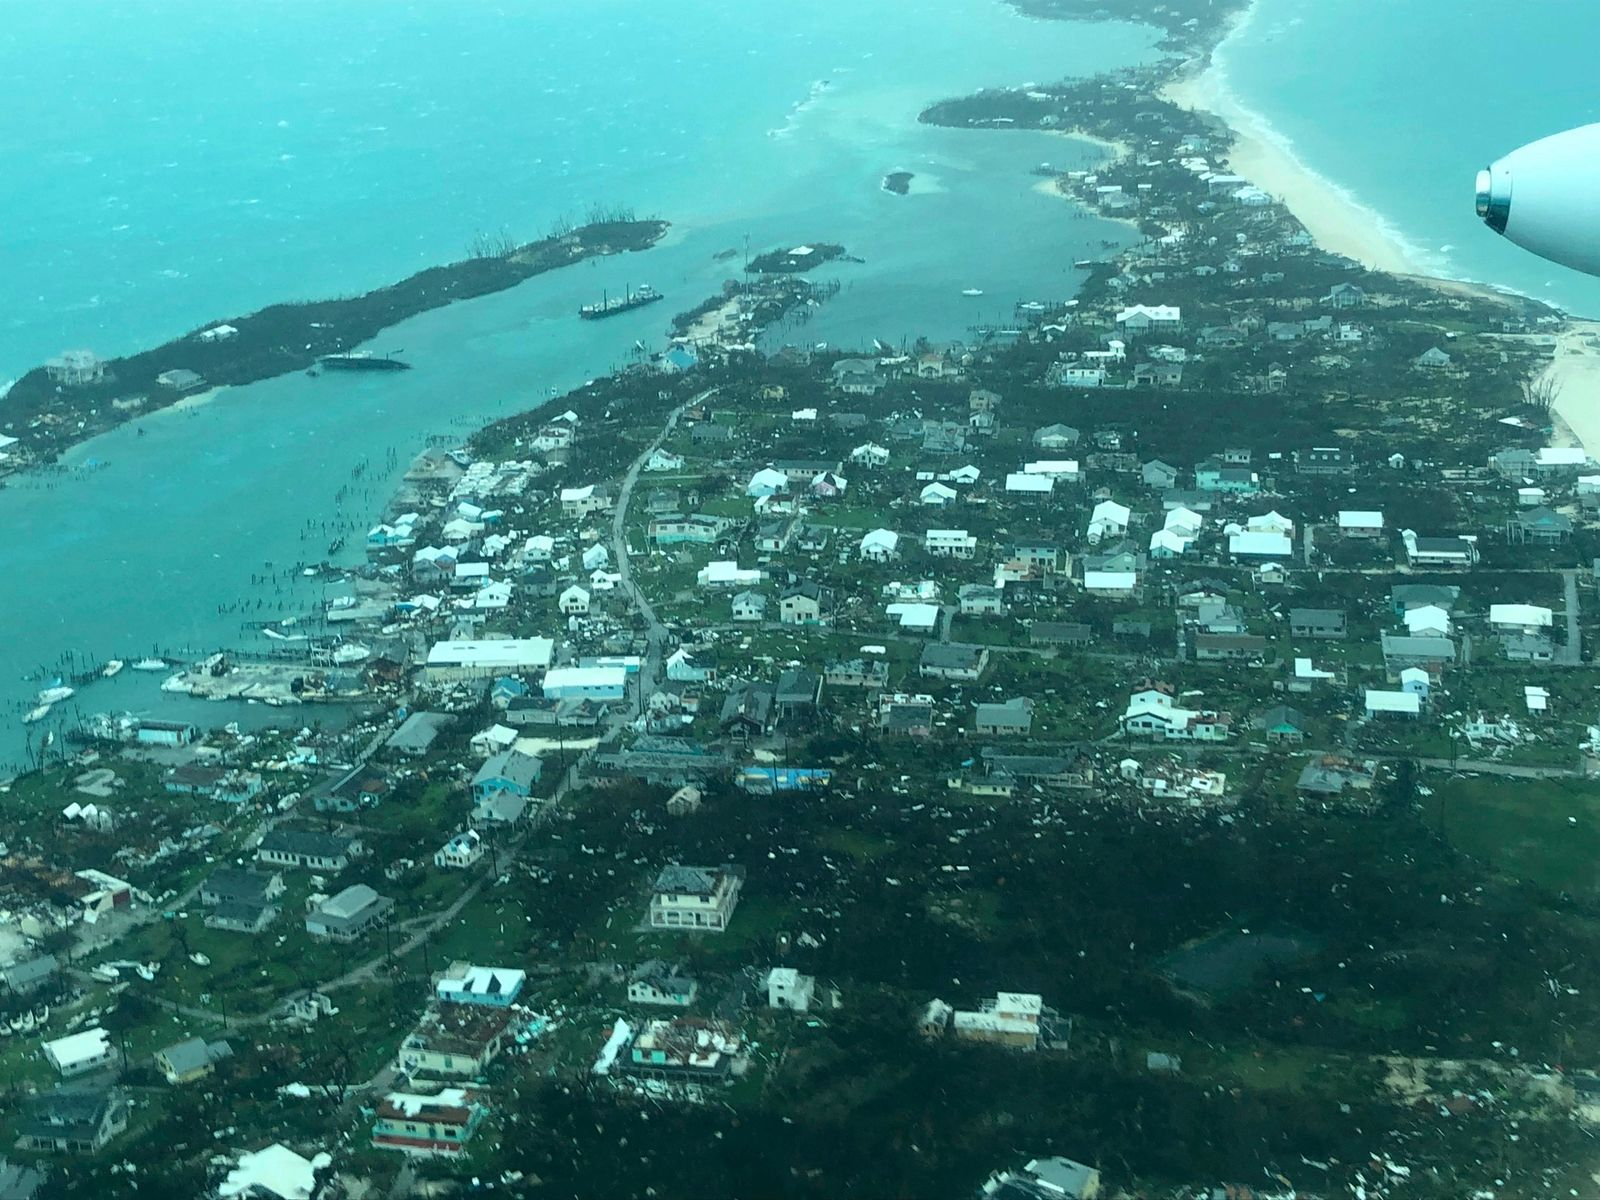 This aerial photo provided by Medic Corps, shows the destruction brought by Hurricane Dorian on Man-o-War Cay, Bahamas, Tuesday, Sept.3, 2019. (Medic Corps via AP)